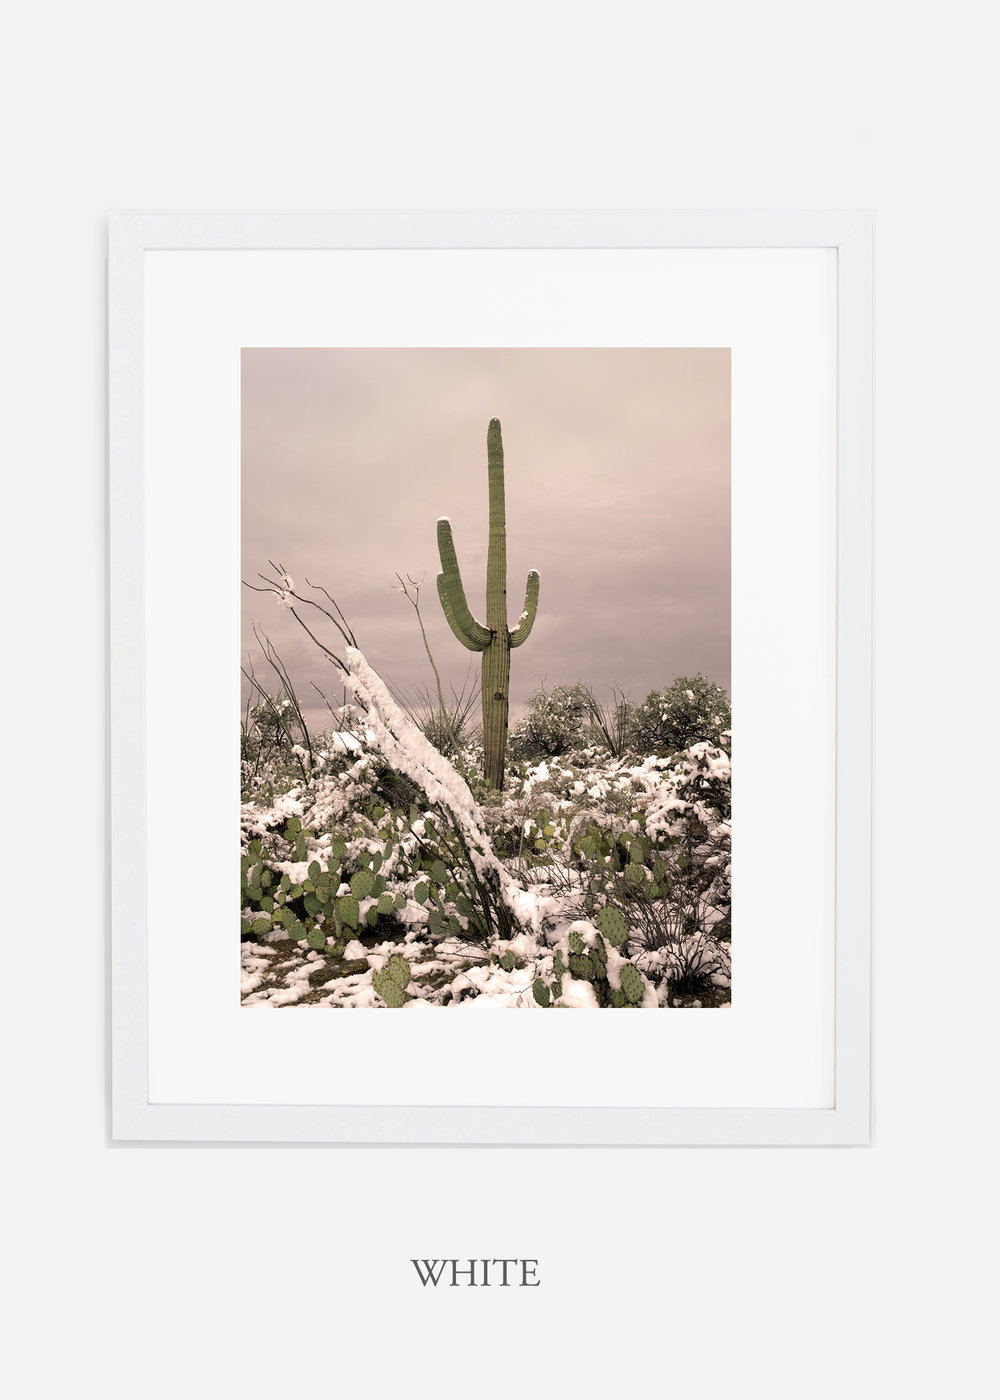 whiteframe-saguaroNo.4-wildercalifornia-art-wallart-cactusprint-homedecor-prints-arizona-botanical-artwork-interiordesign.jpg